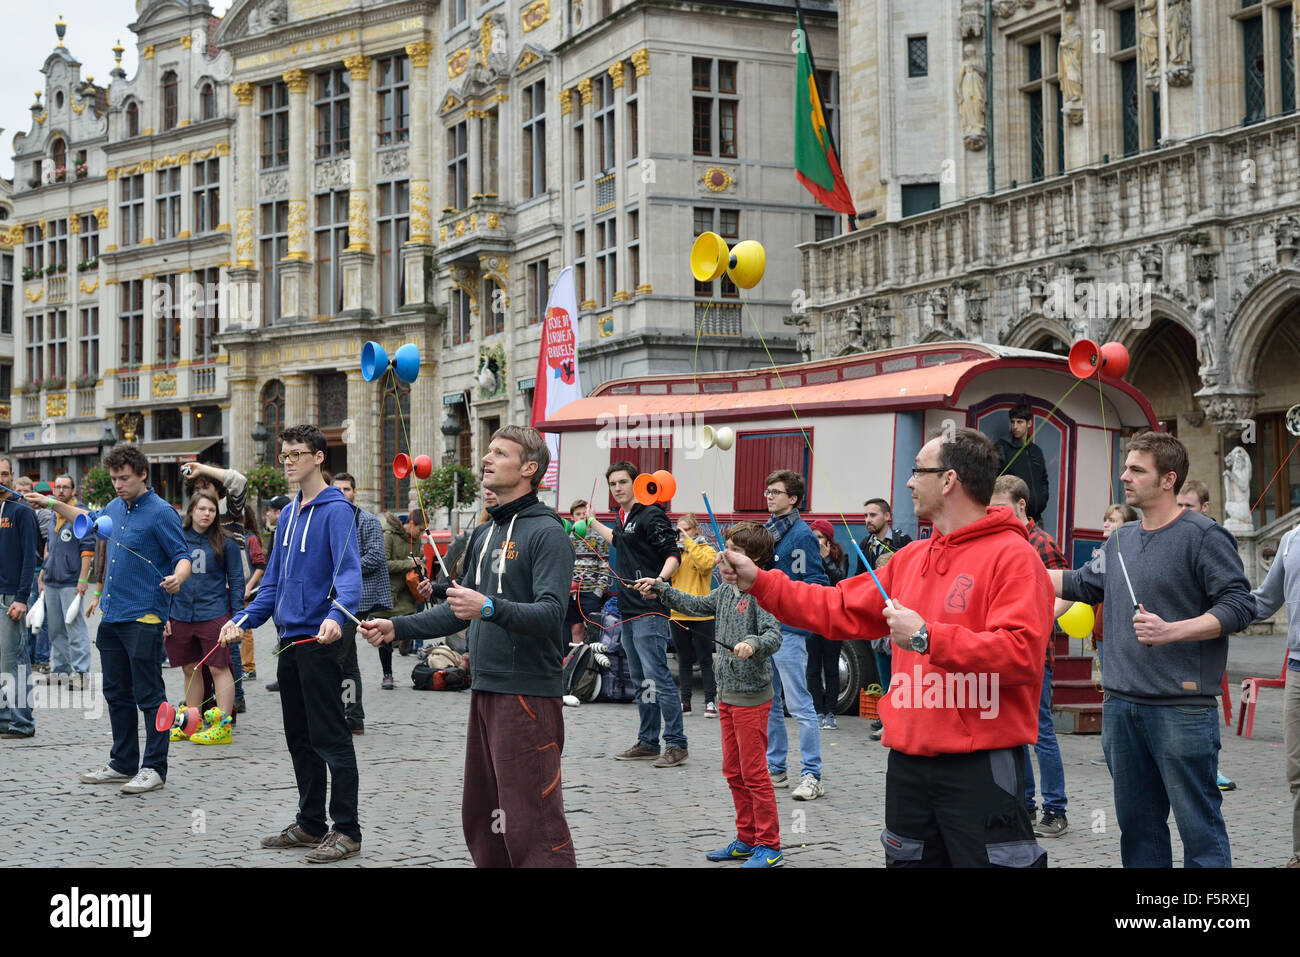 Students And Amateurs Of Cirque Participate In Performance And Presentation Of School Of Cirque On Grand Place In Brussels On Sunday 8 November